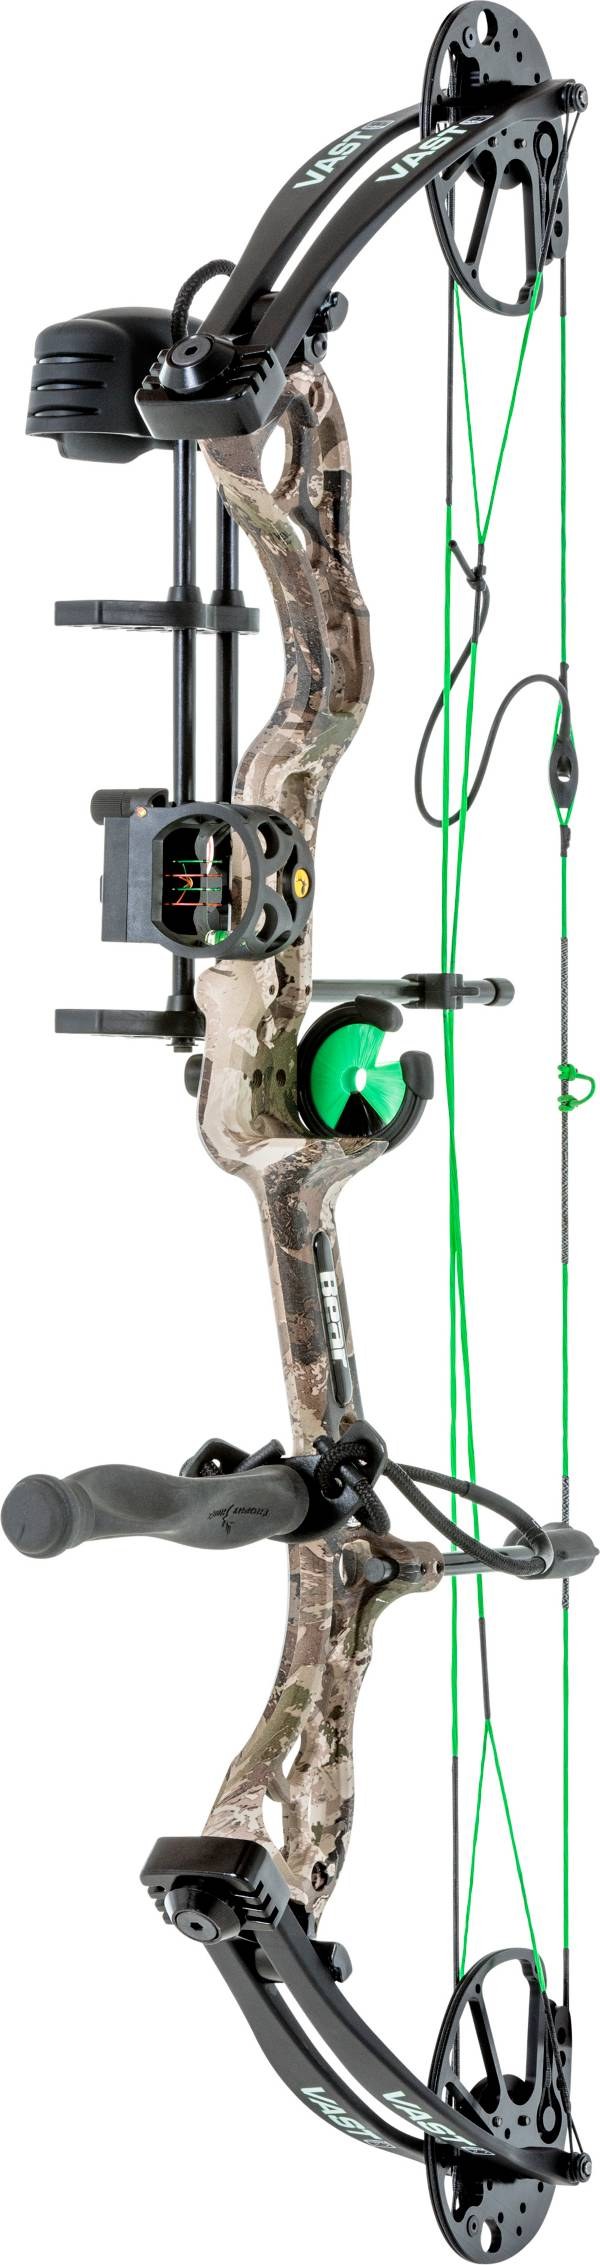 Bear Archery Vast RTH Compound Bow Package product image